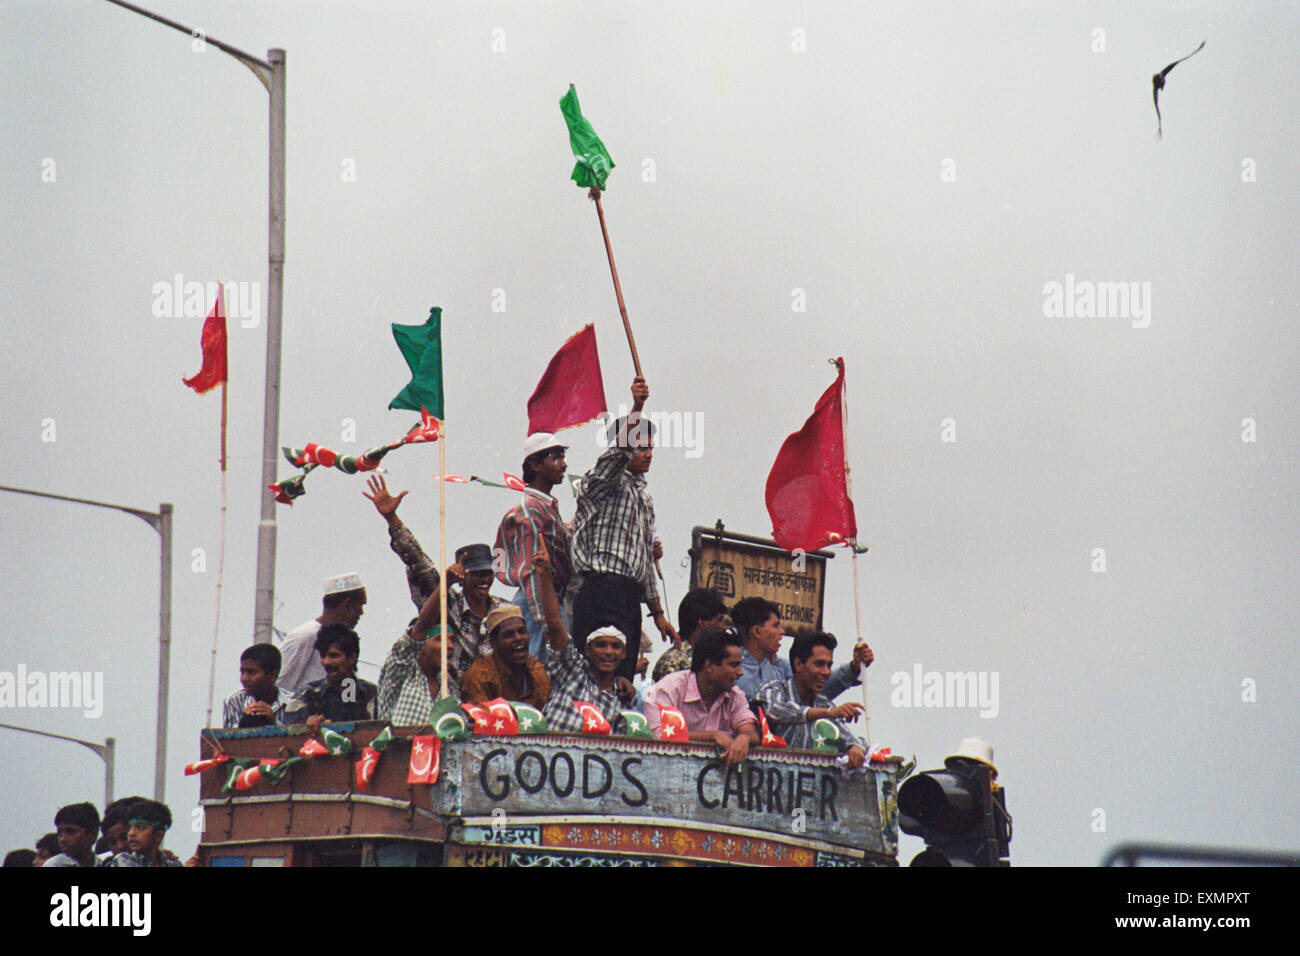 Demonstrators agitators strikers mumbai india - Stock Image